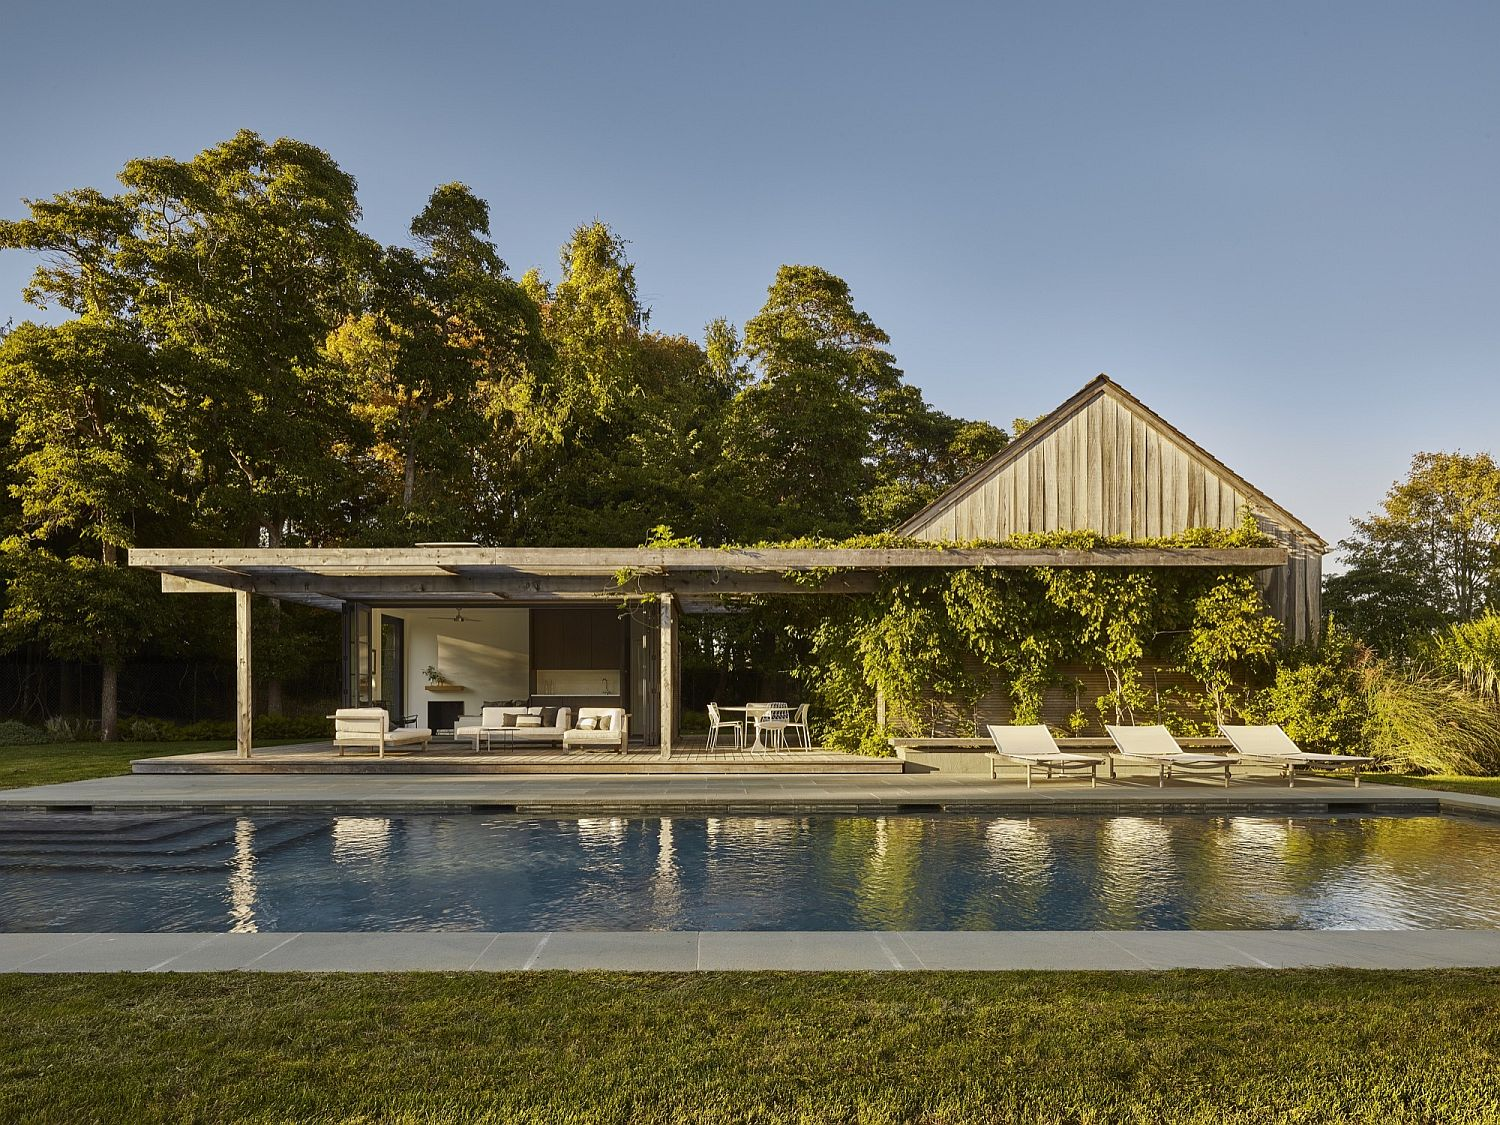 Relaxing-modern-pool-house-draped-in-greenery-offers-the-perfect-refuge